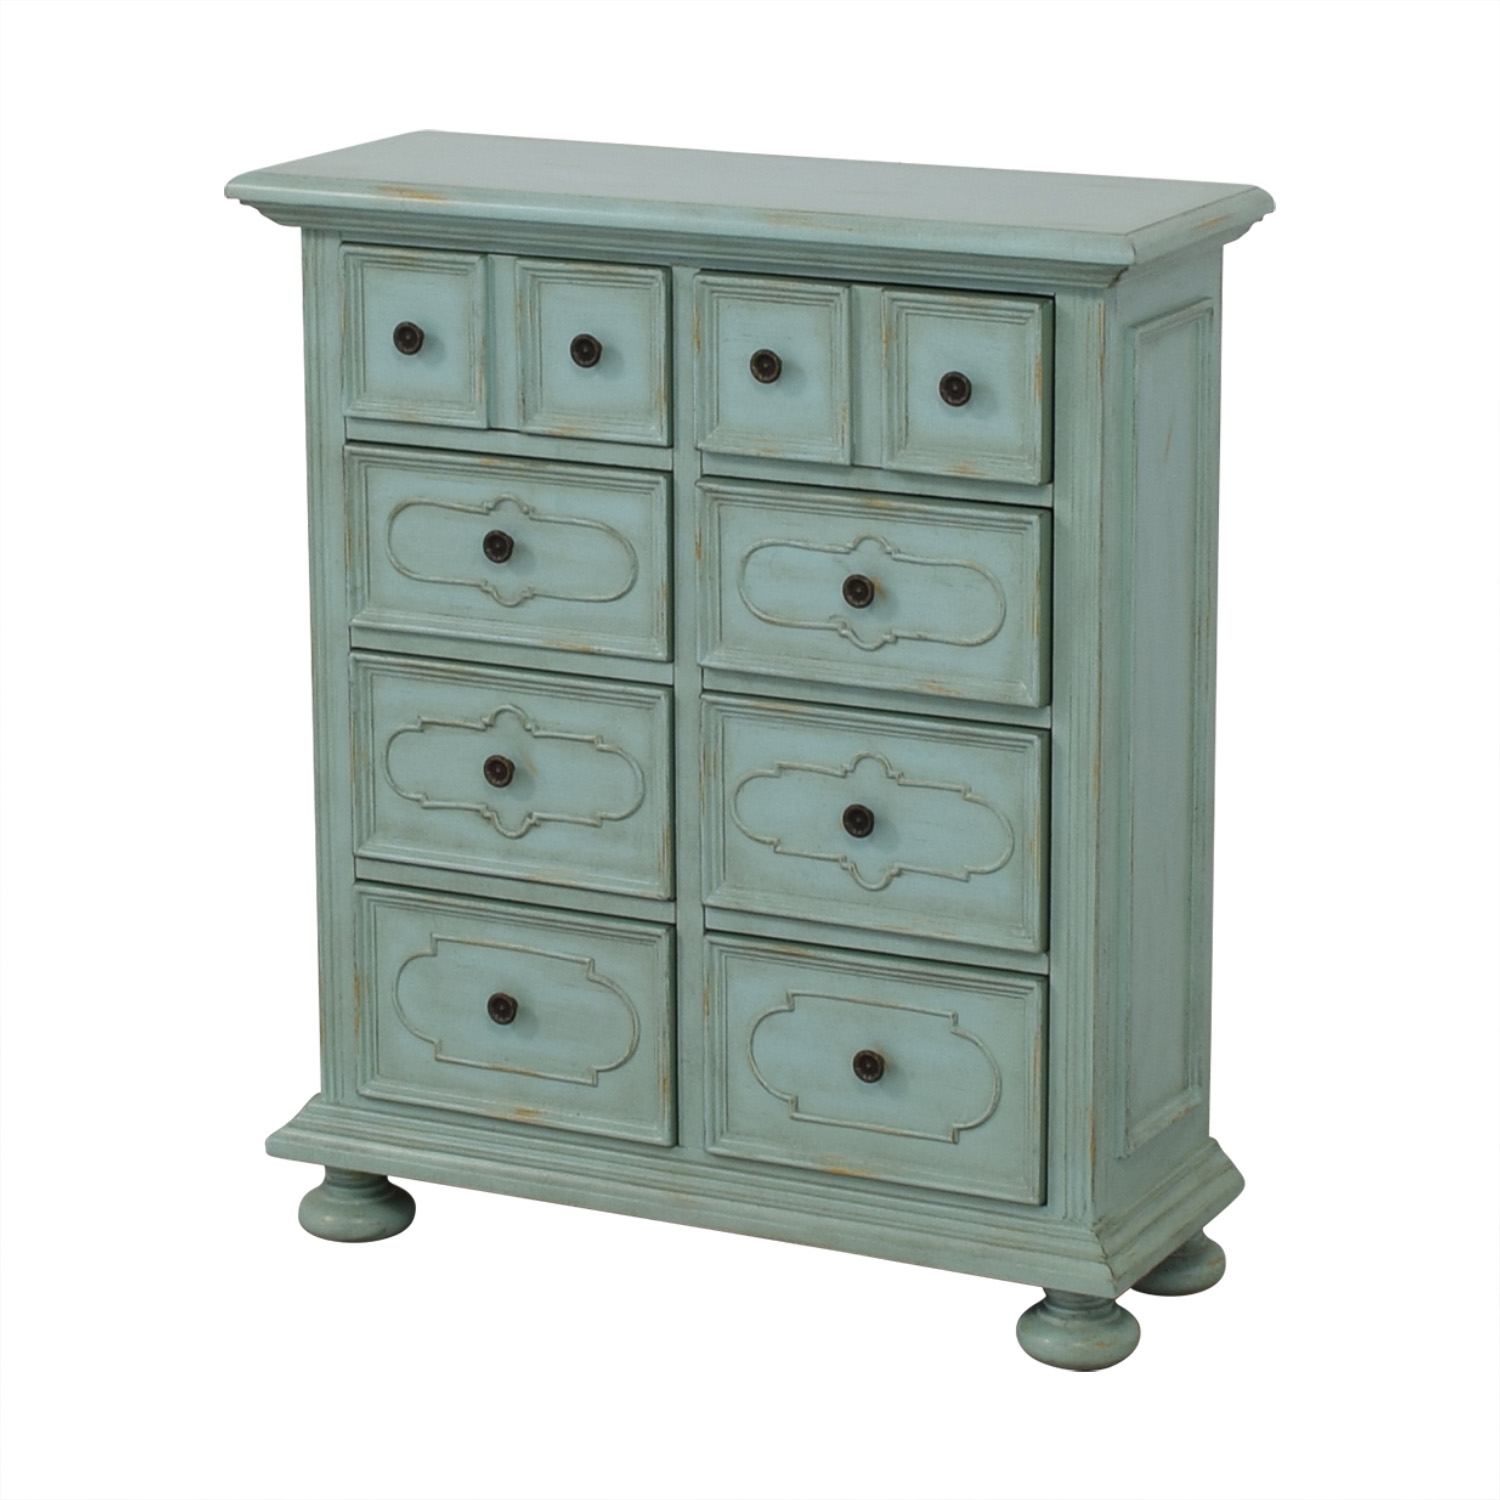 Joss & Main Joss & Main Distressed Dresser nj